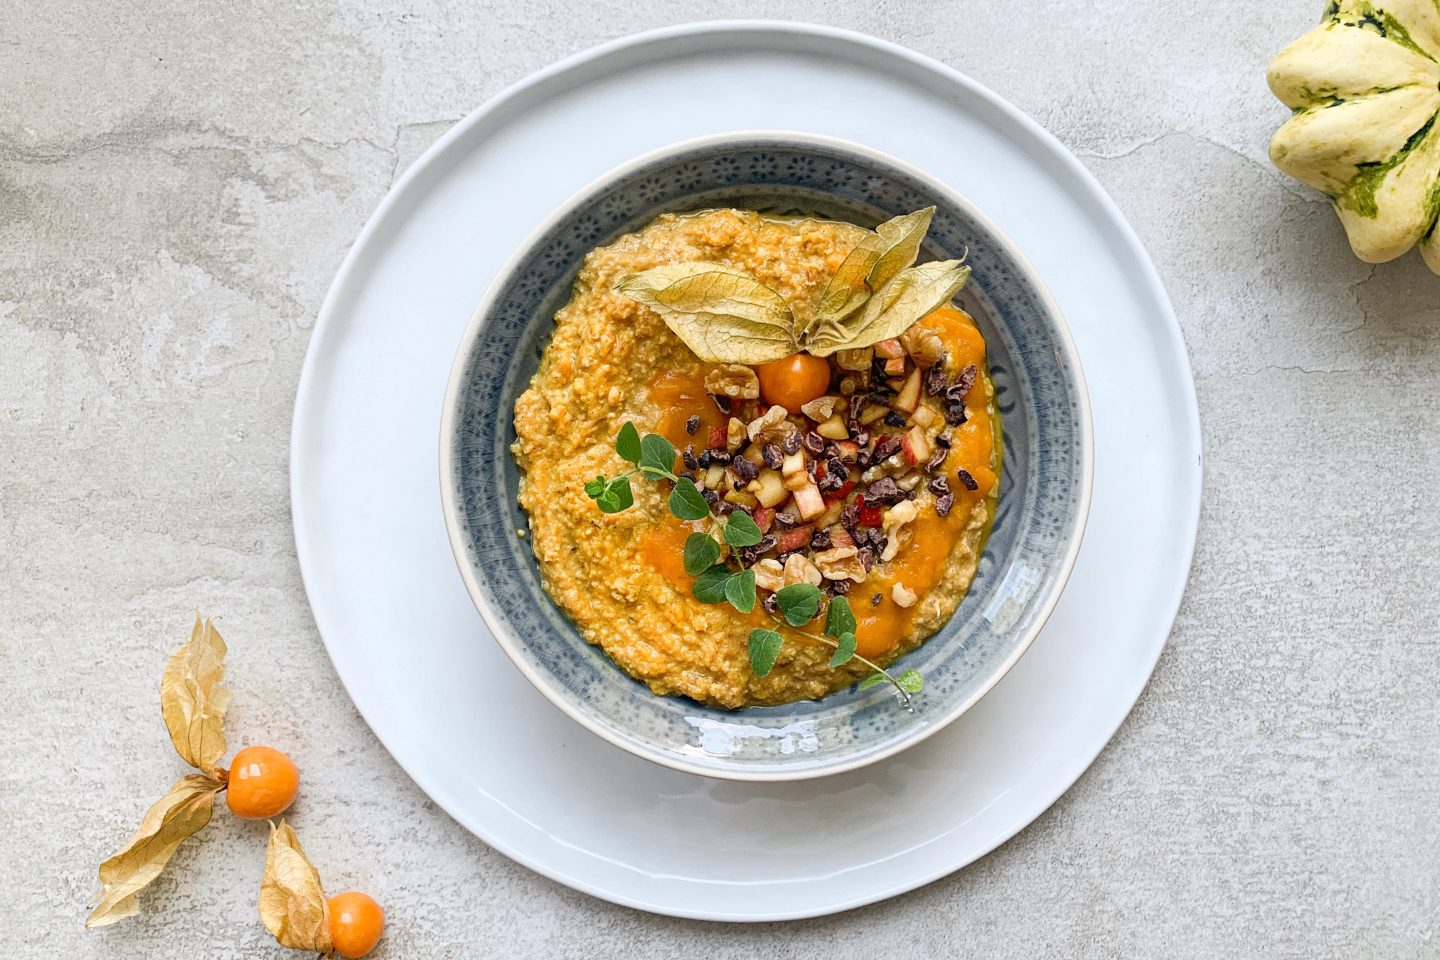 golden pumpkin porridge placed in a lightblue bowl and topped with apple pieces and nuts